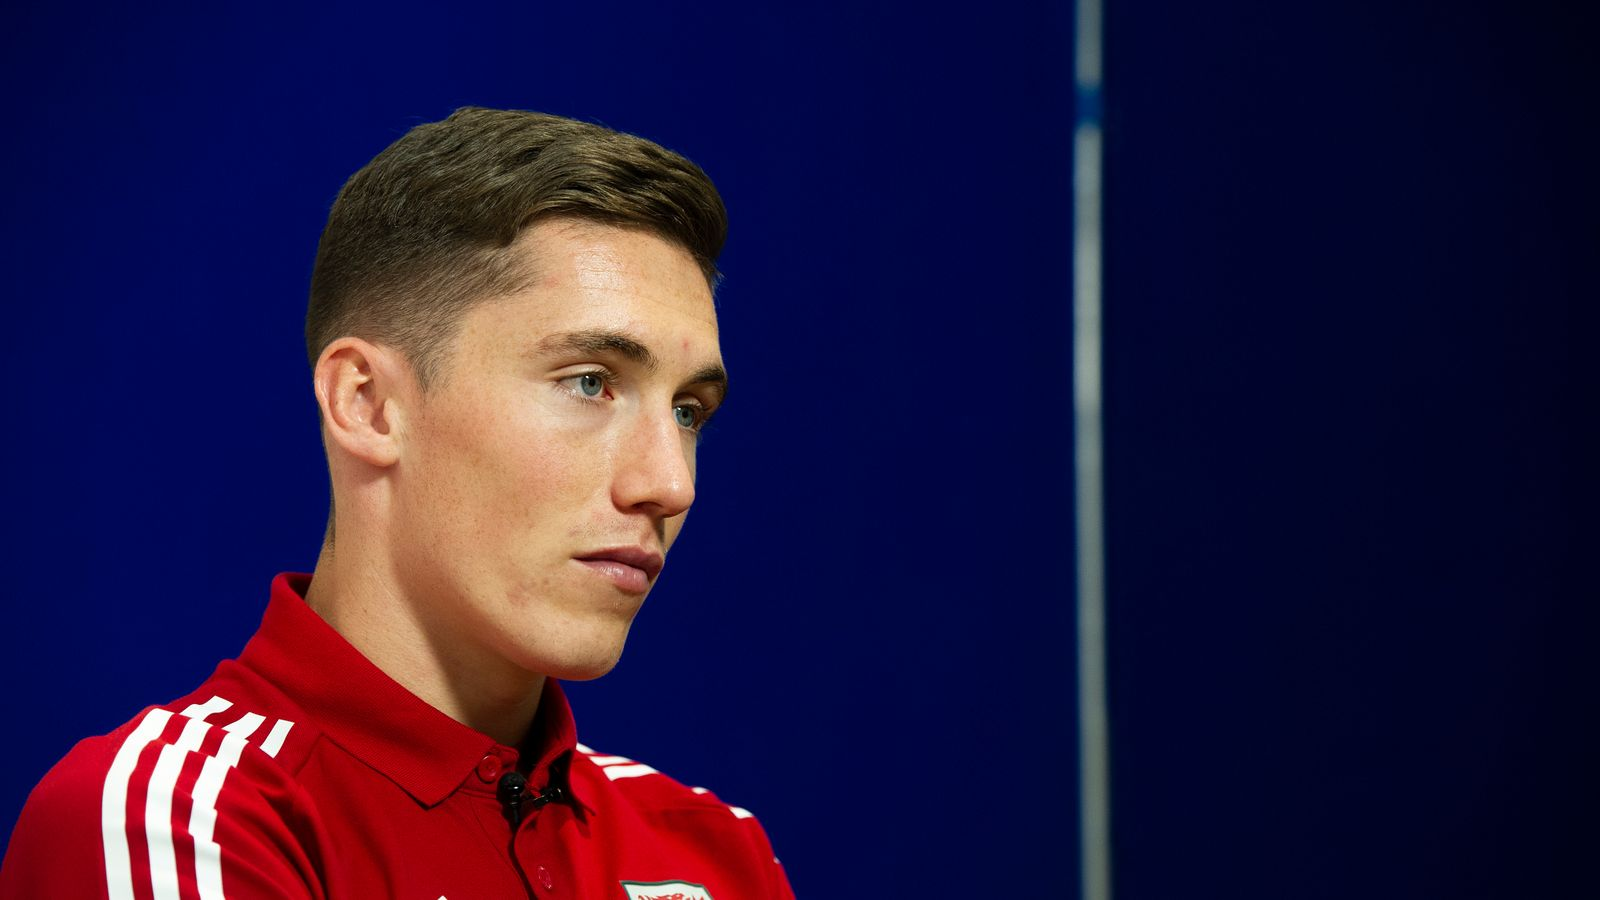 Liverpool's on-loan midfielder Harry Wilson says text messages from Jurgen Klopp is helping form